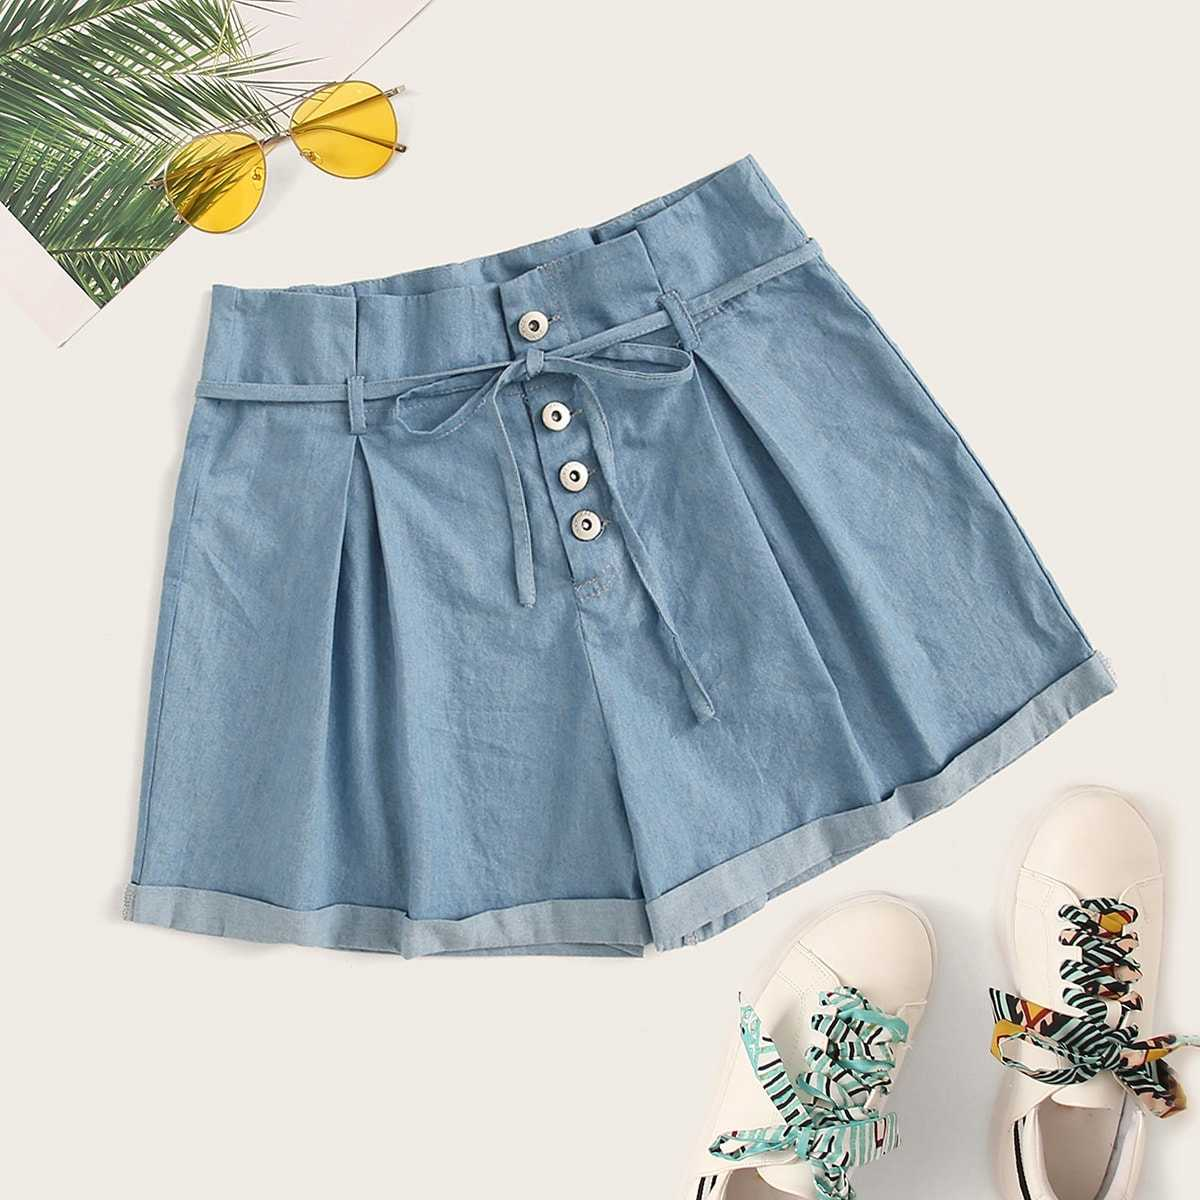 Button Front Tie Waist Denim Shorts in Blue by ROMWE on GOOFASH